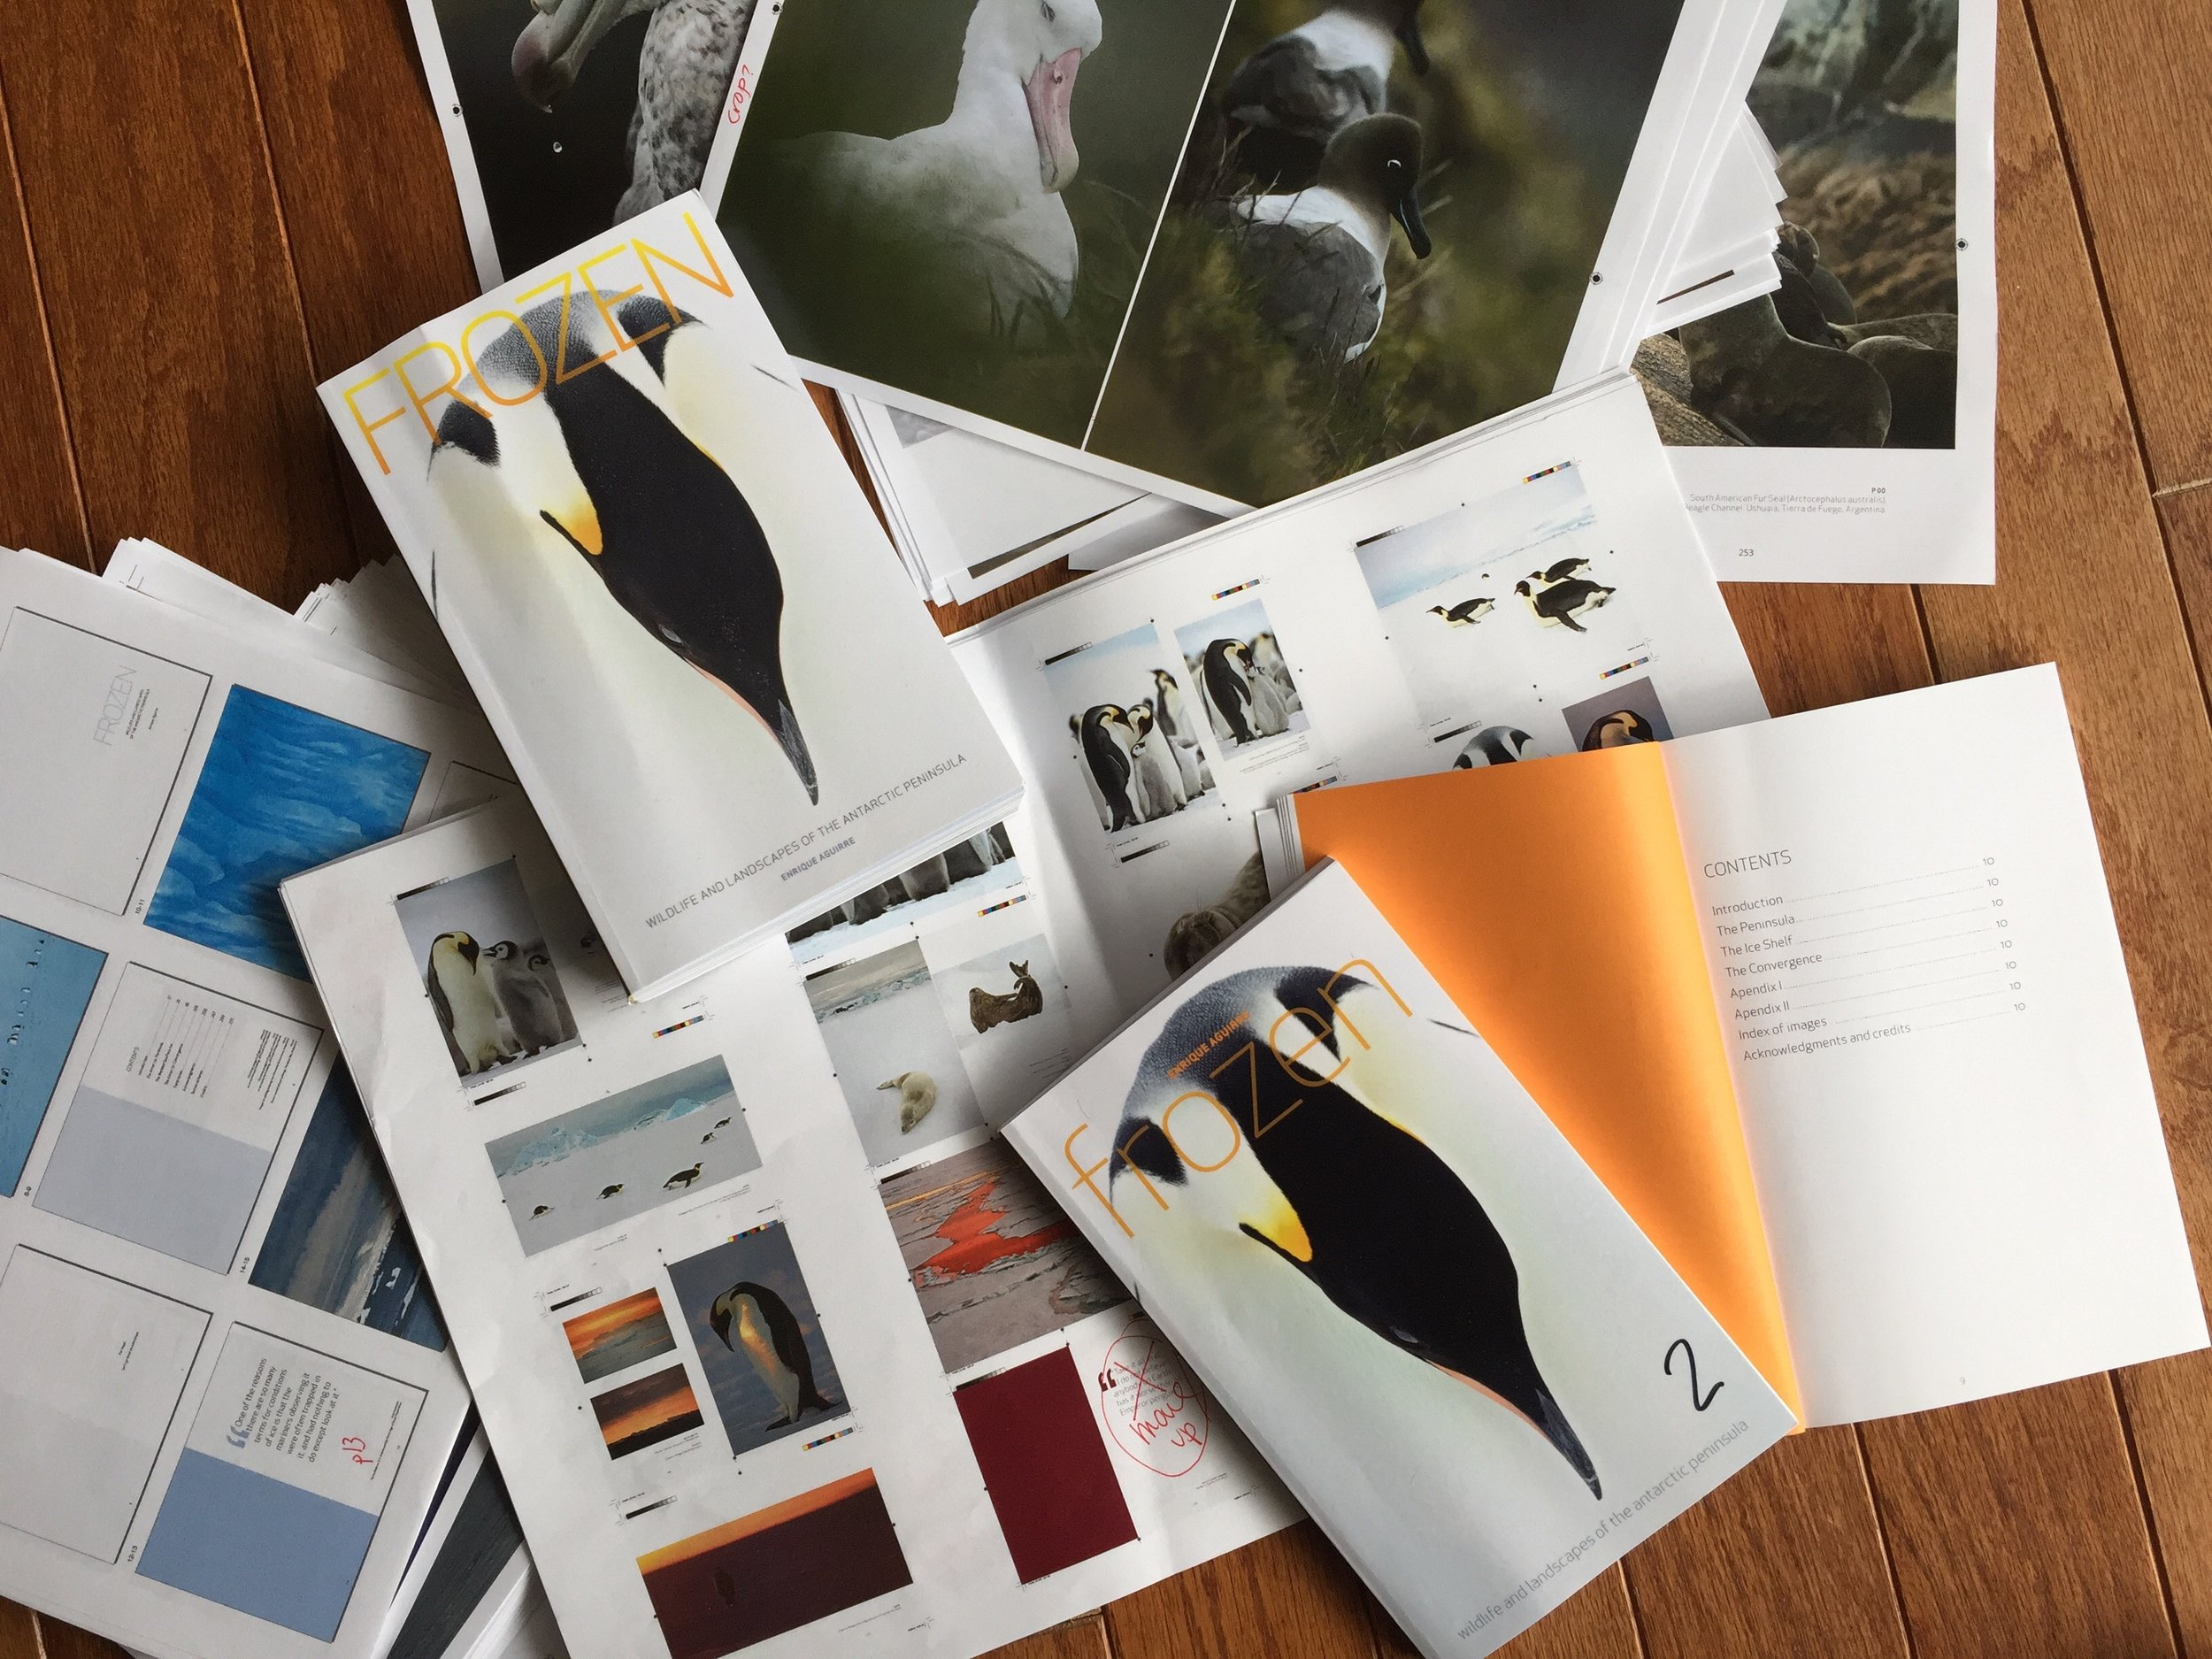 Cover options, page layouts, marked up edits, and printing / binding prototypes for the pocket edition